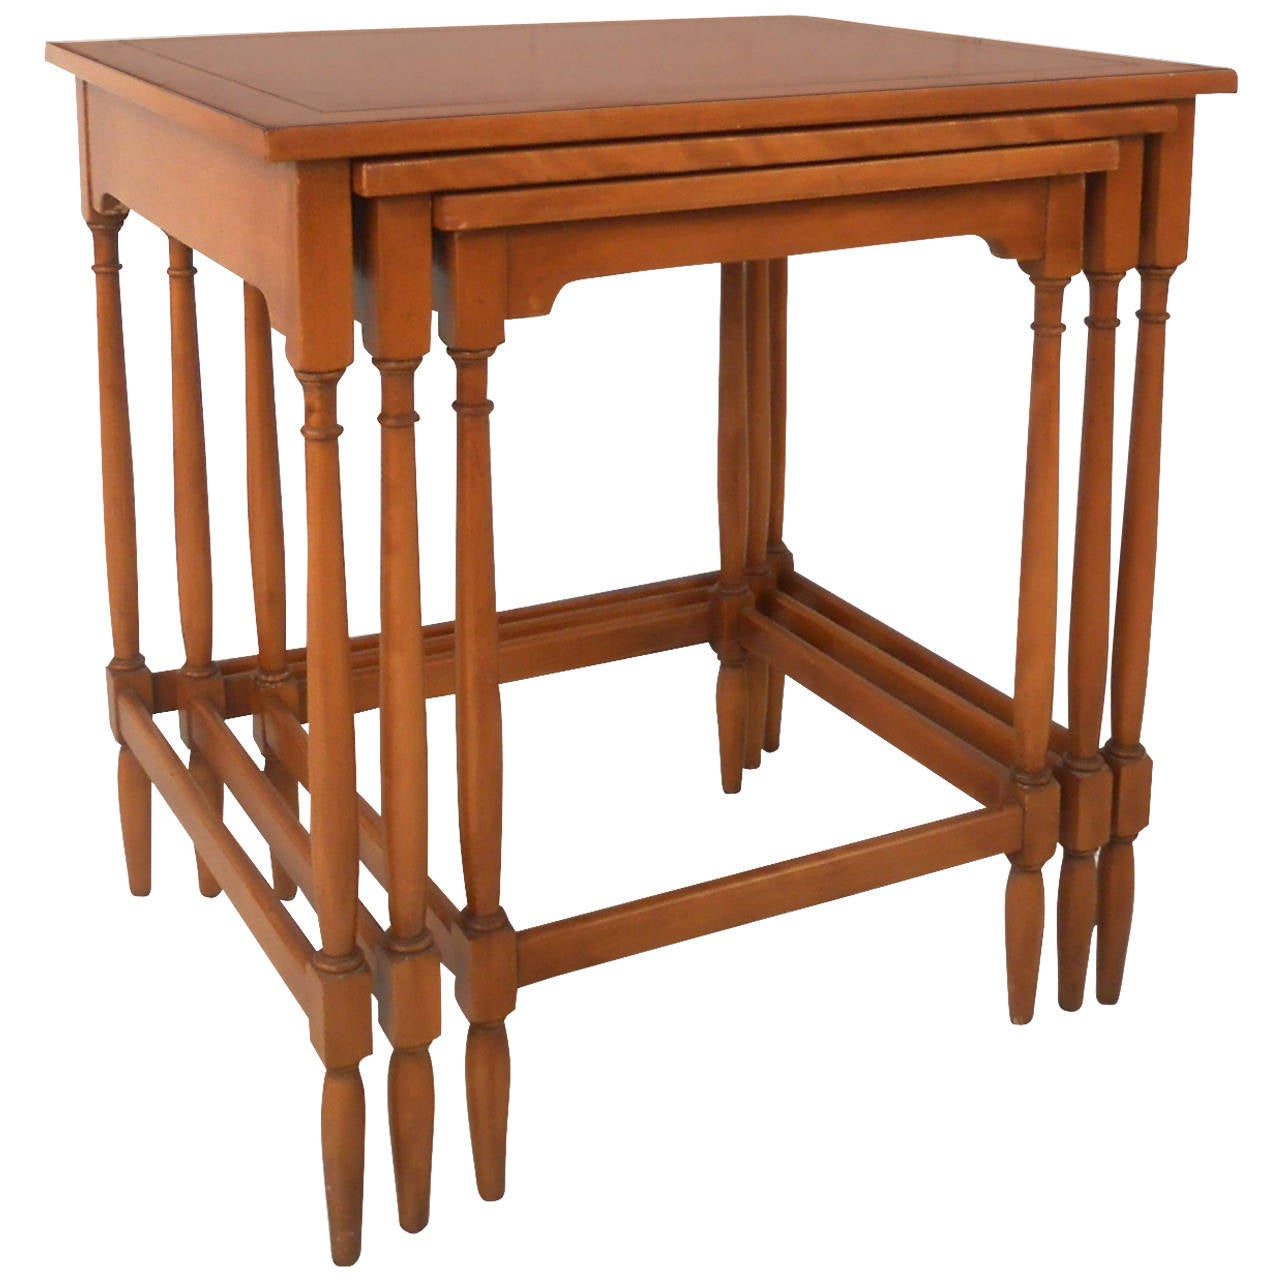 Set of Three Nesting Tables by Hekman